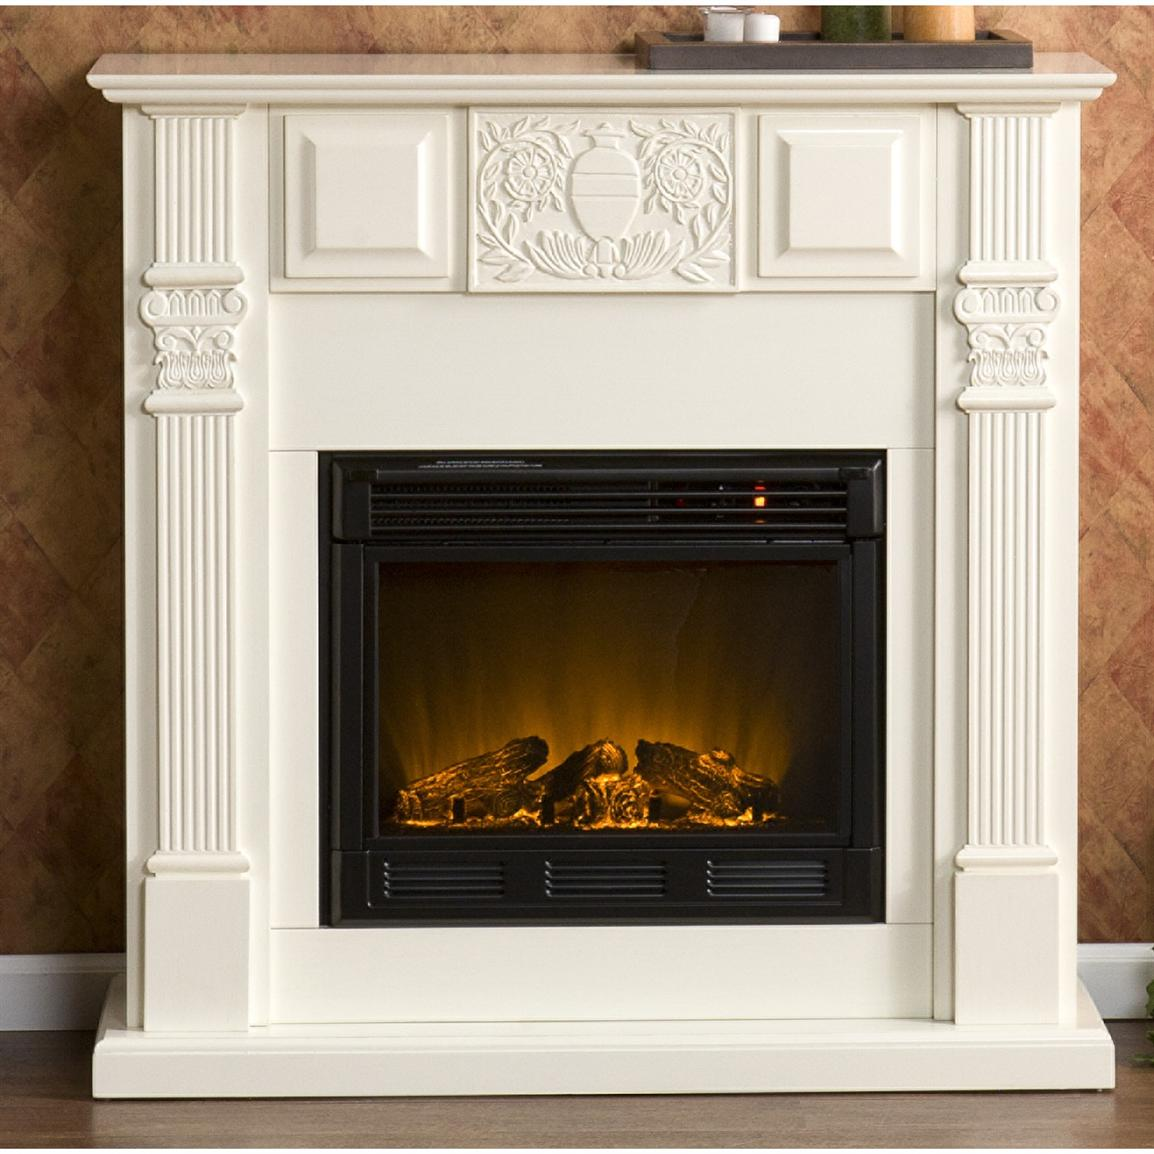 Southern Enterprises Inc Lasalle Electric Fireplace 200944 Fireplaces At Sportsman 39 S Guide